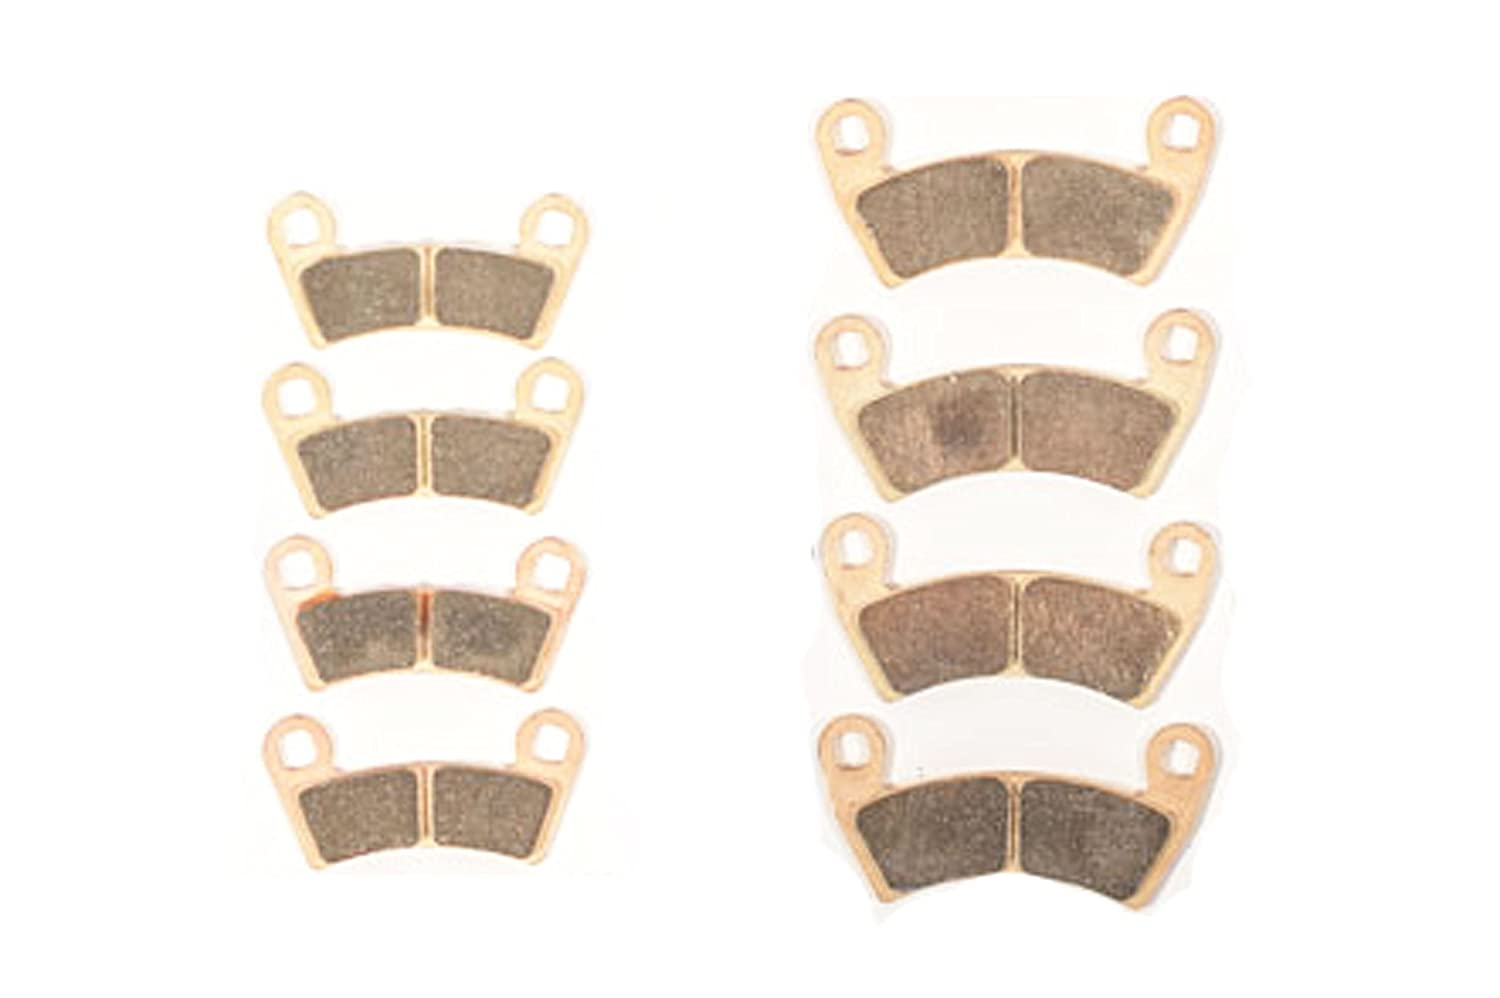 Brake Pads fit Polaris RZR 4 900 2015-2018 Front and Rear by Race-Driven